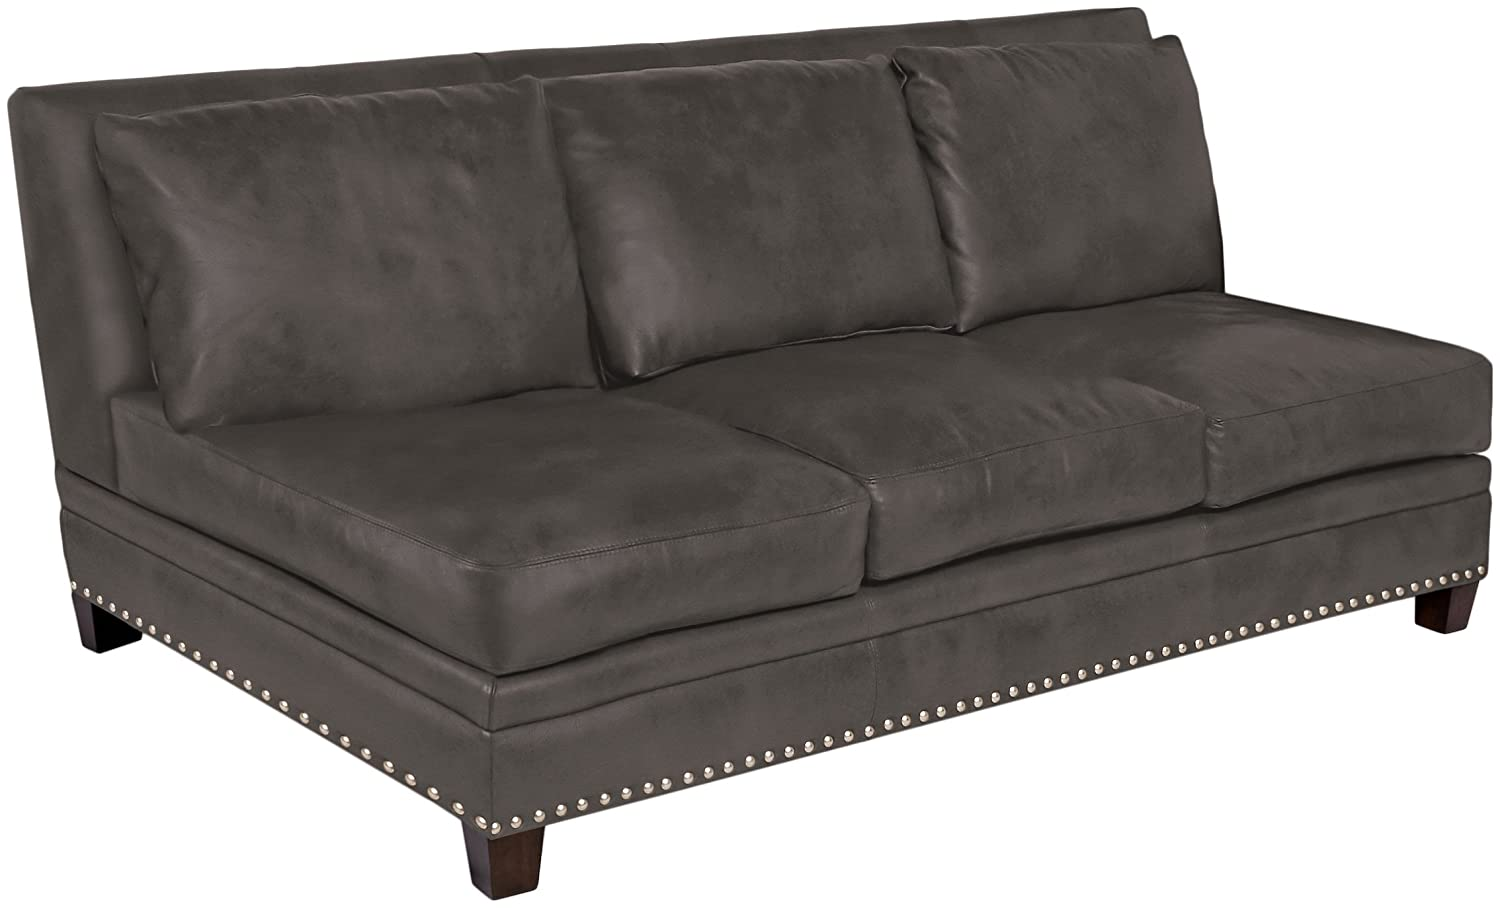 Excellent Amazon Com Omnia Leather Glendora Armless 3 Cushion Sofa In Bralicious Painted Fabric Chair Ideas Braliciousco